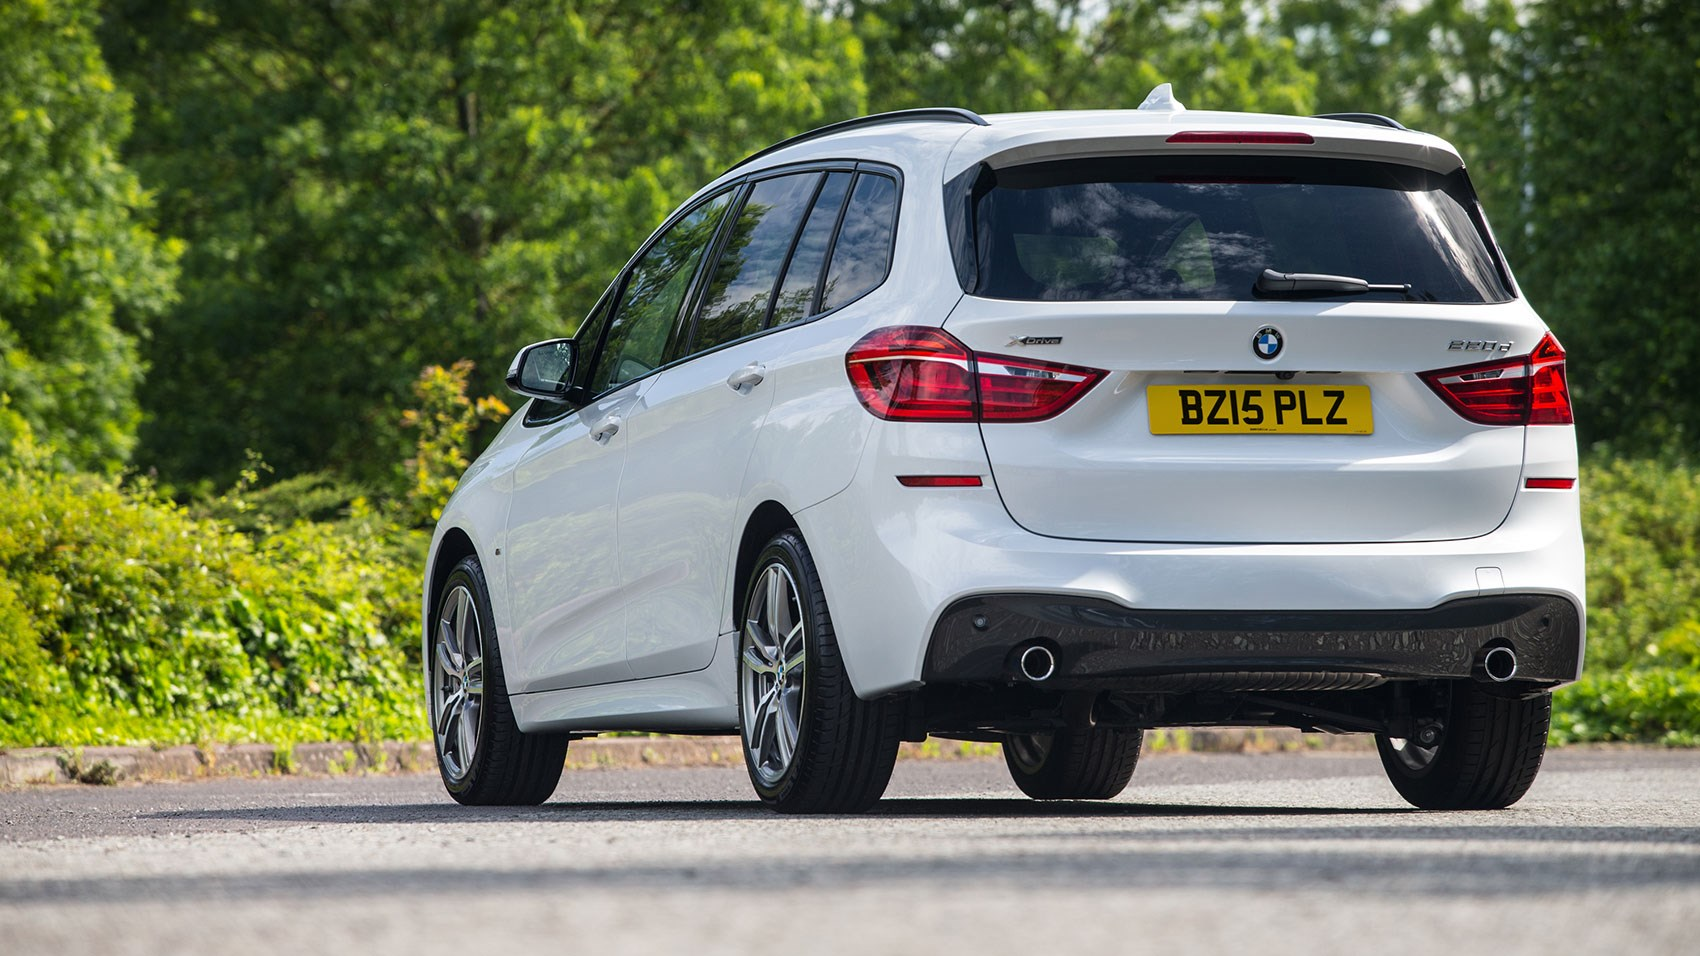 Bmw 220i gran tourer m sport package 2015 wallpapers and hd images -  The 2 Series Gran Tourer Is Actually Slightly Shorter Than A 3 Series Touring